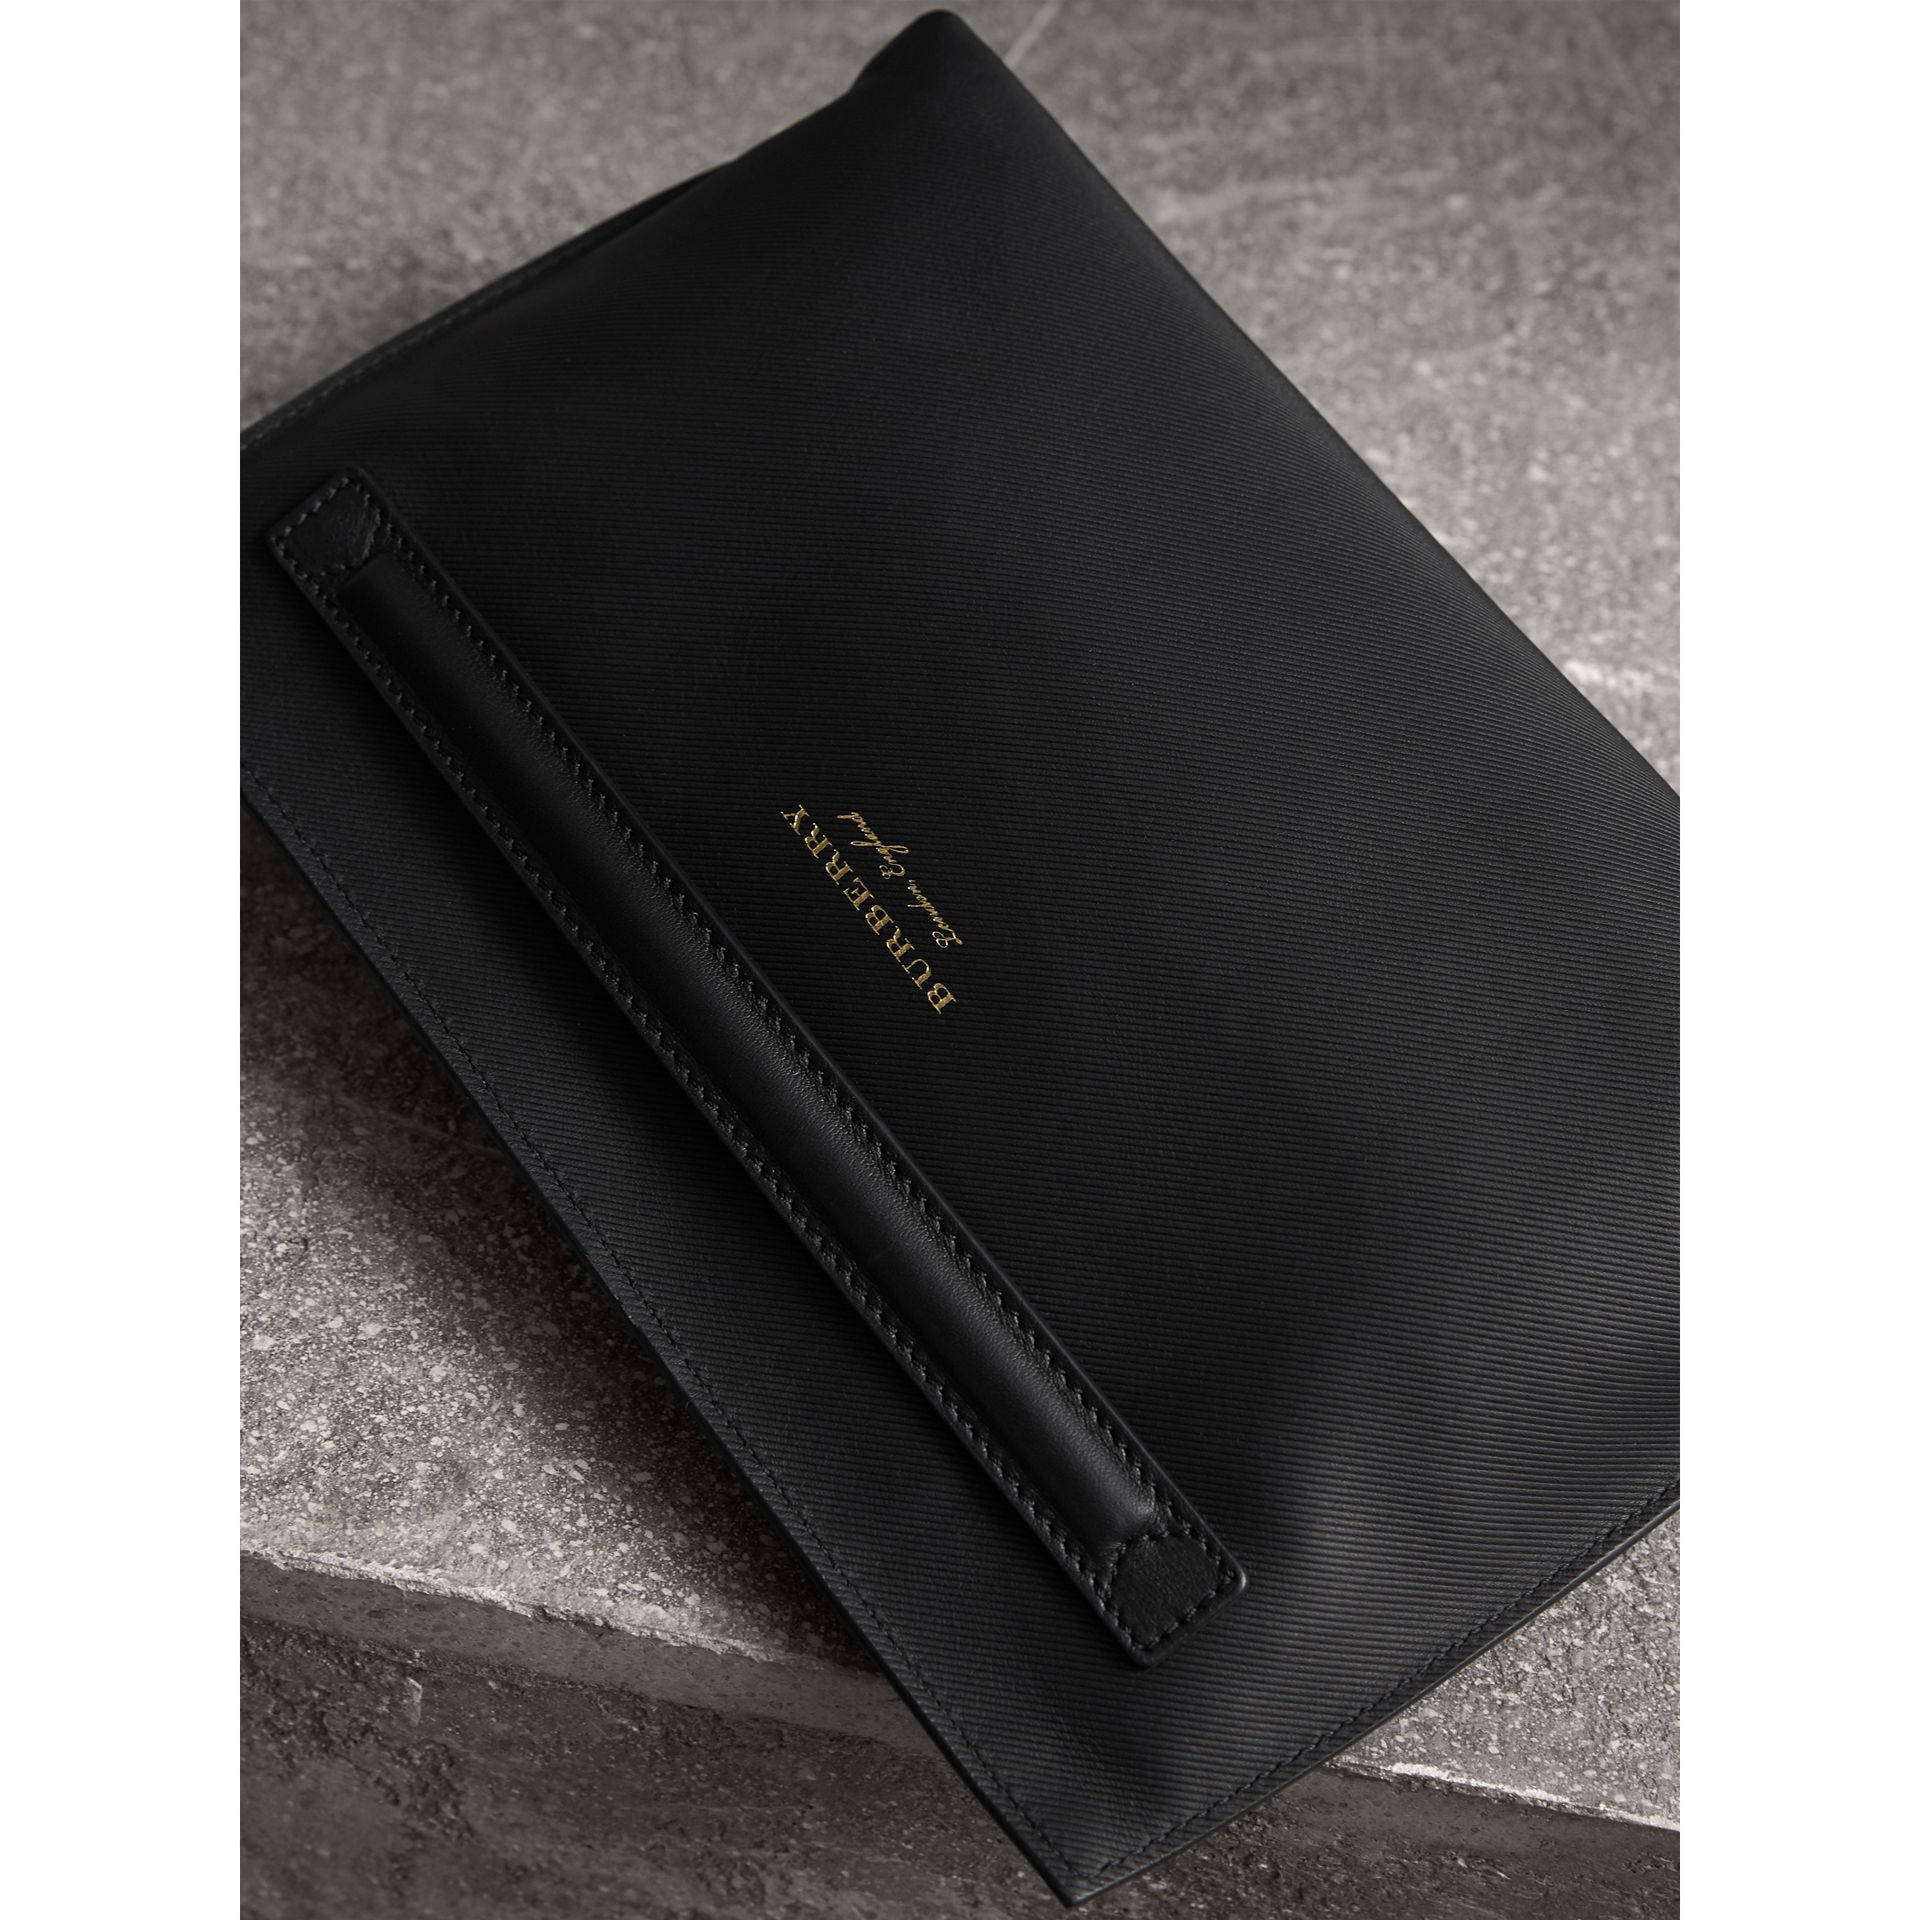 Trench Leather Wristlet Pouch in Black - Women | Burberry United States - gallery image 3